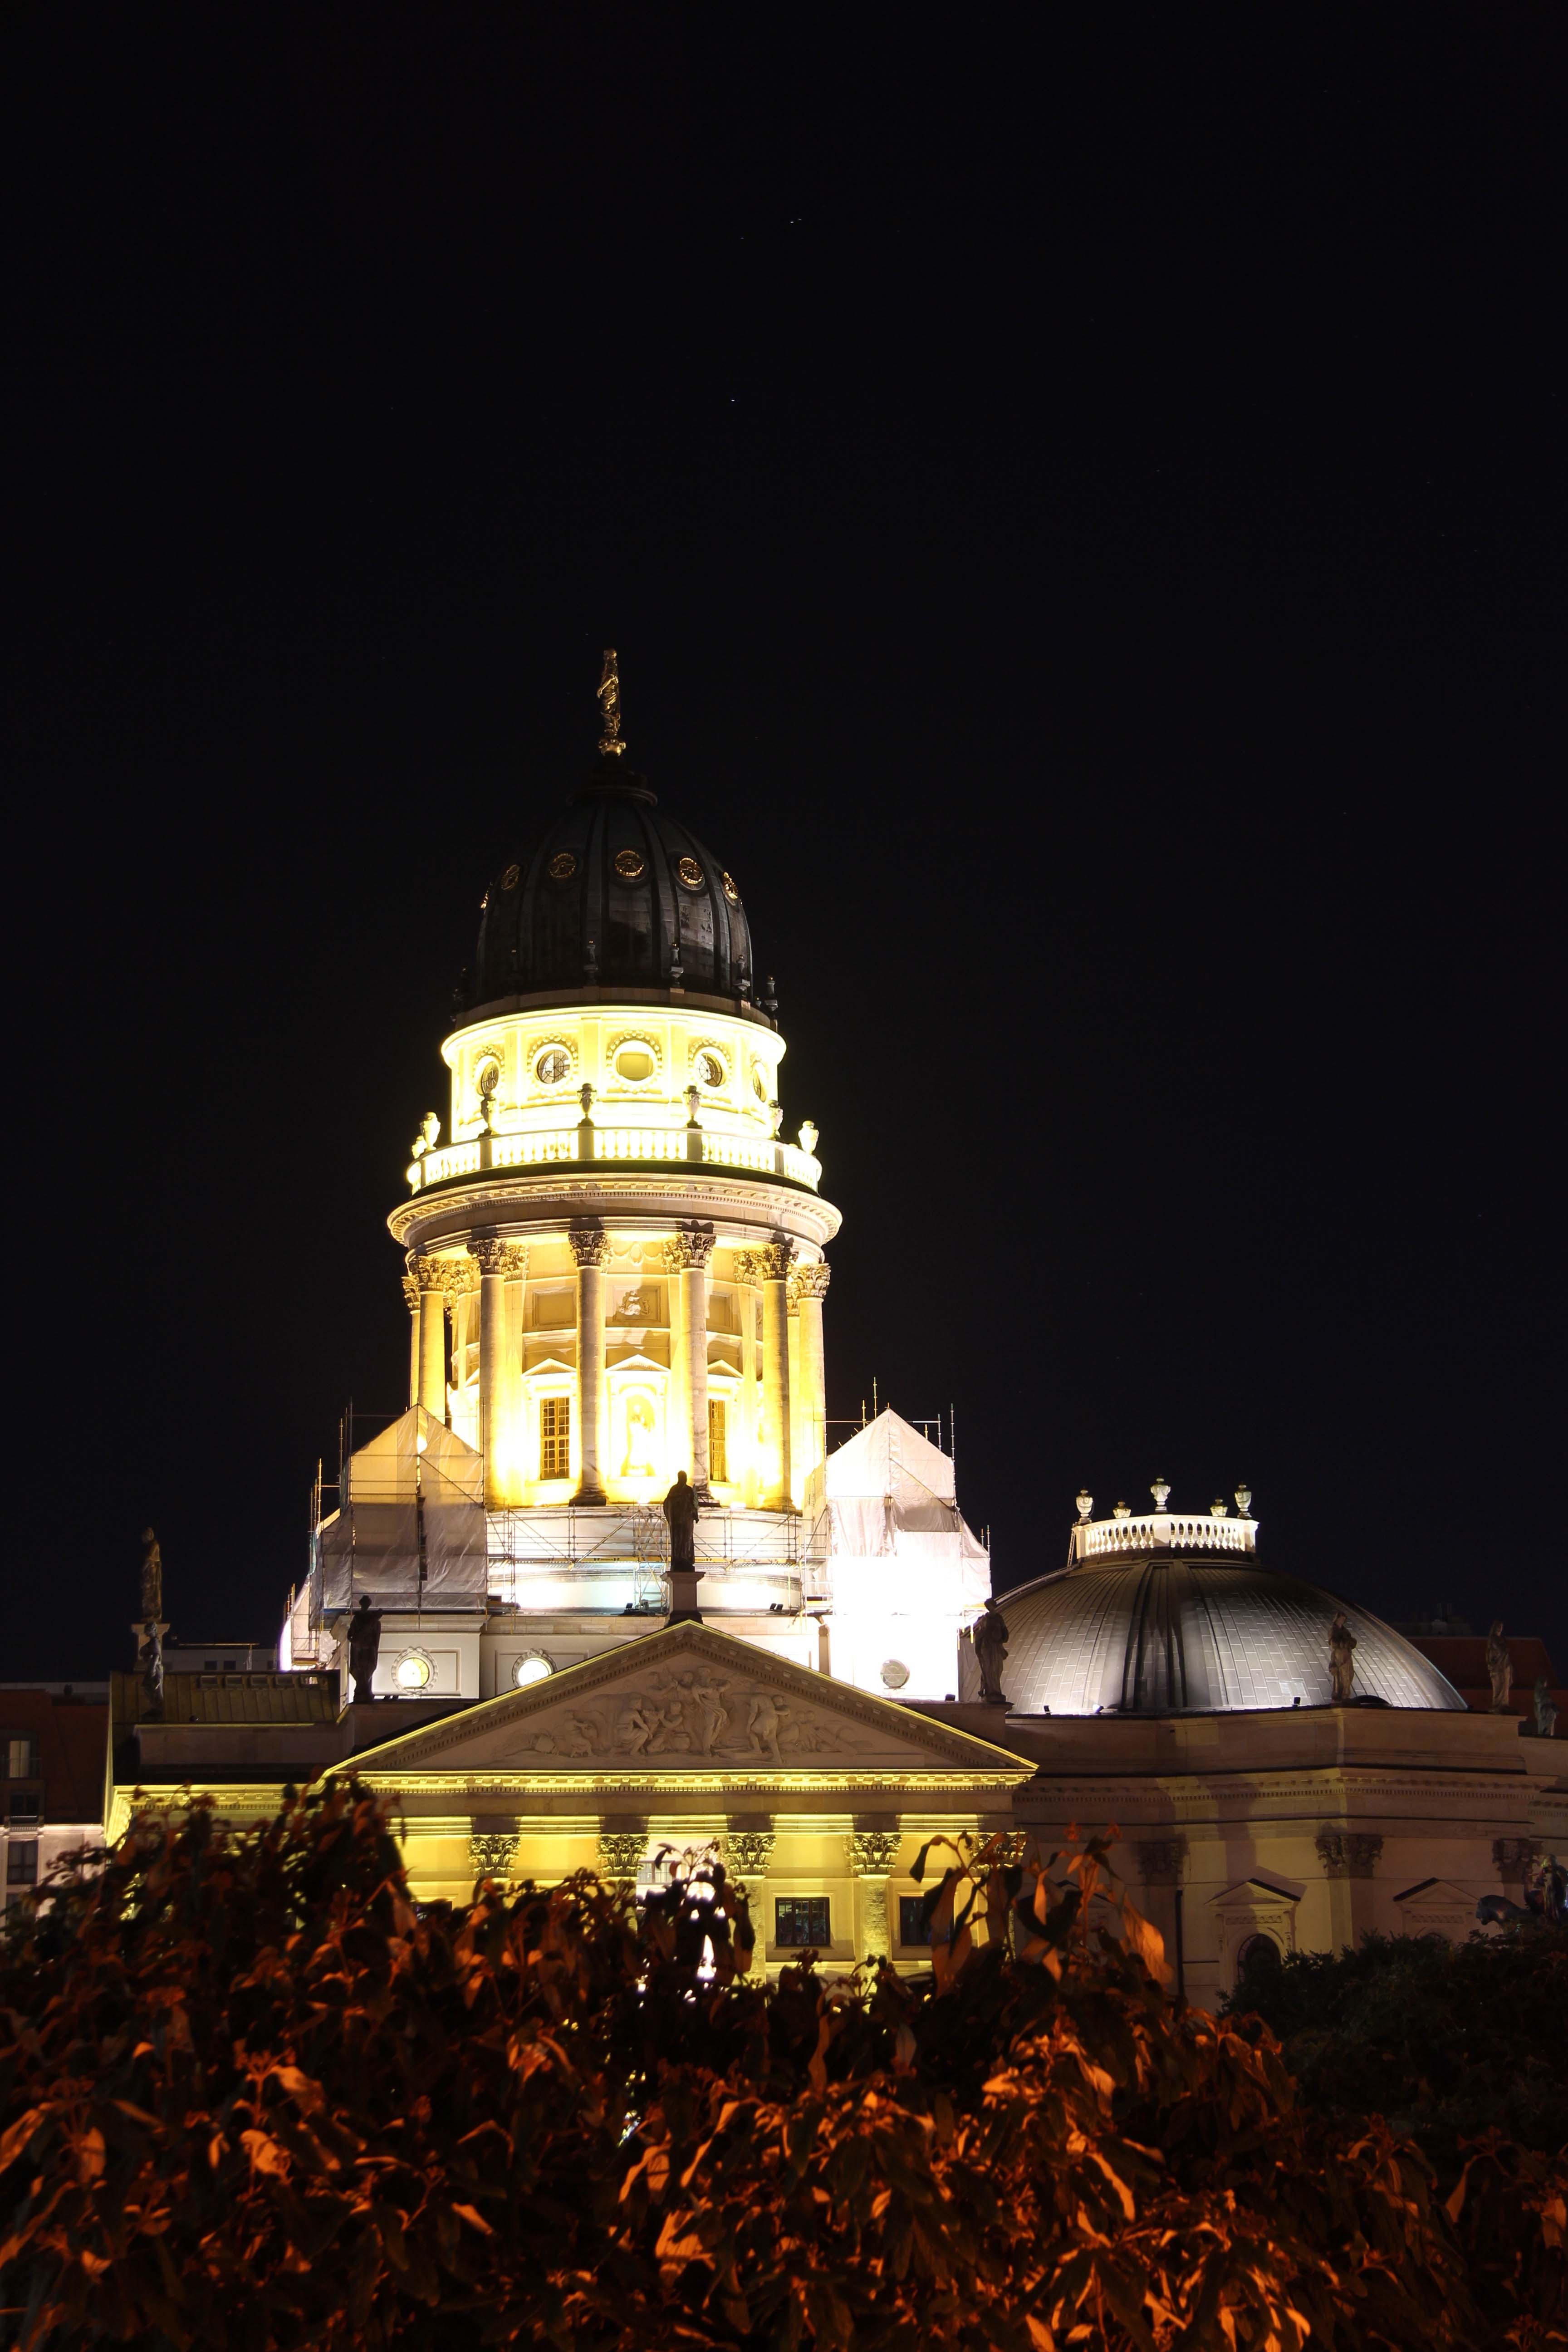 The Deutscher Dom (German Cathedral) lit up during the Festival of Lights in Berlin